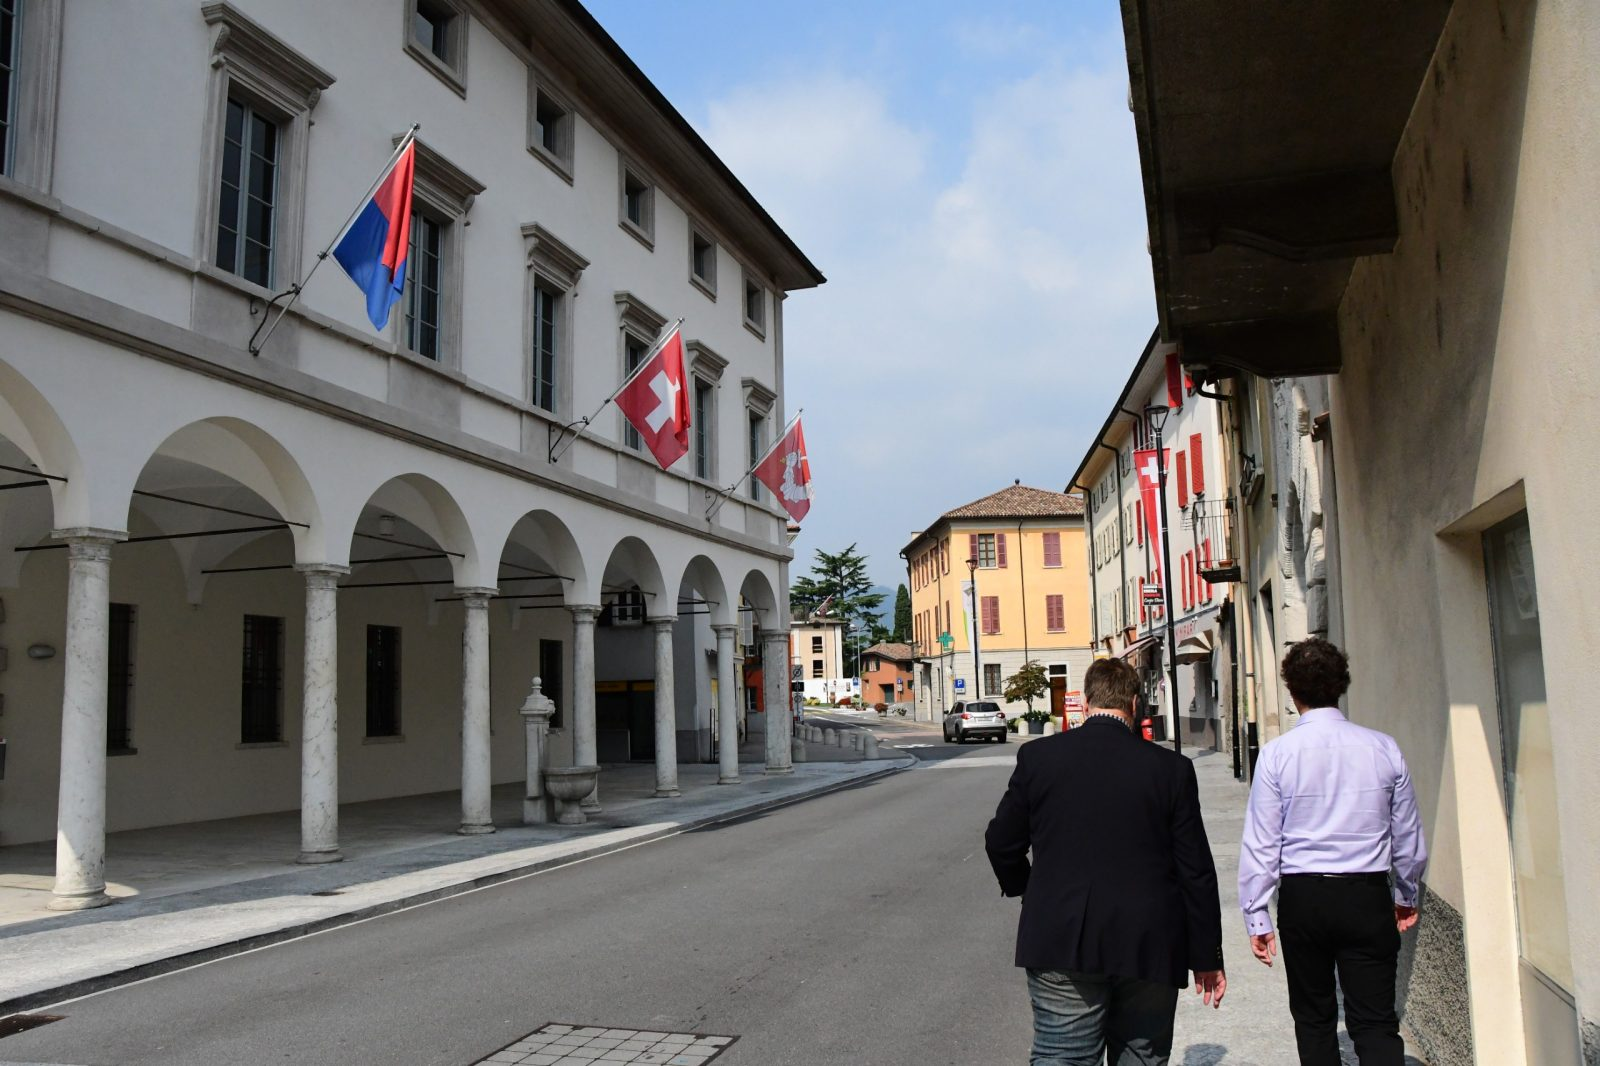 Dr. Scott Nelson and Dr. Yannis Stivachtis on a walk through town, Fall 2018, Riva San Vitale, Switzerland